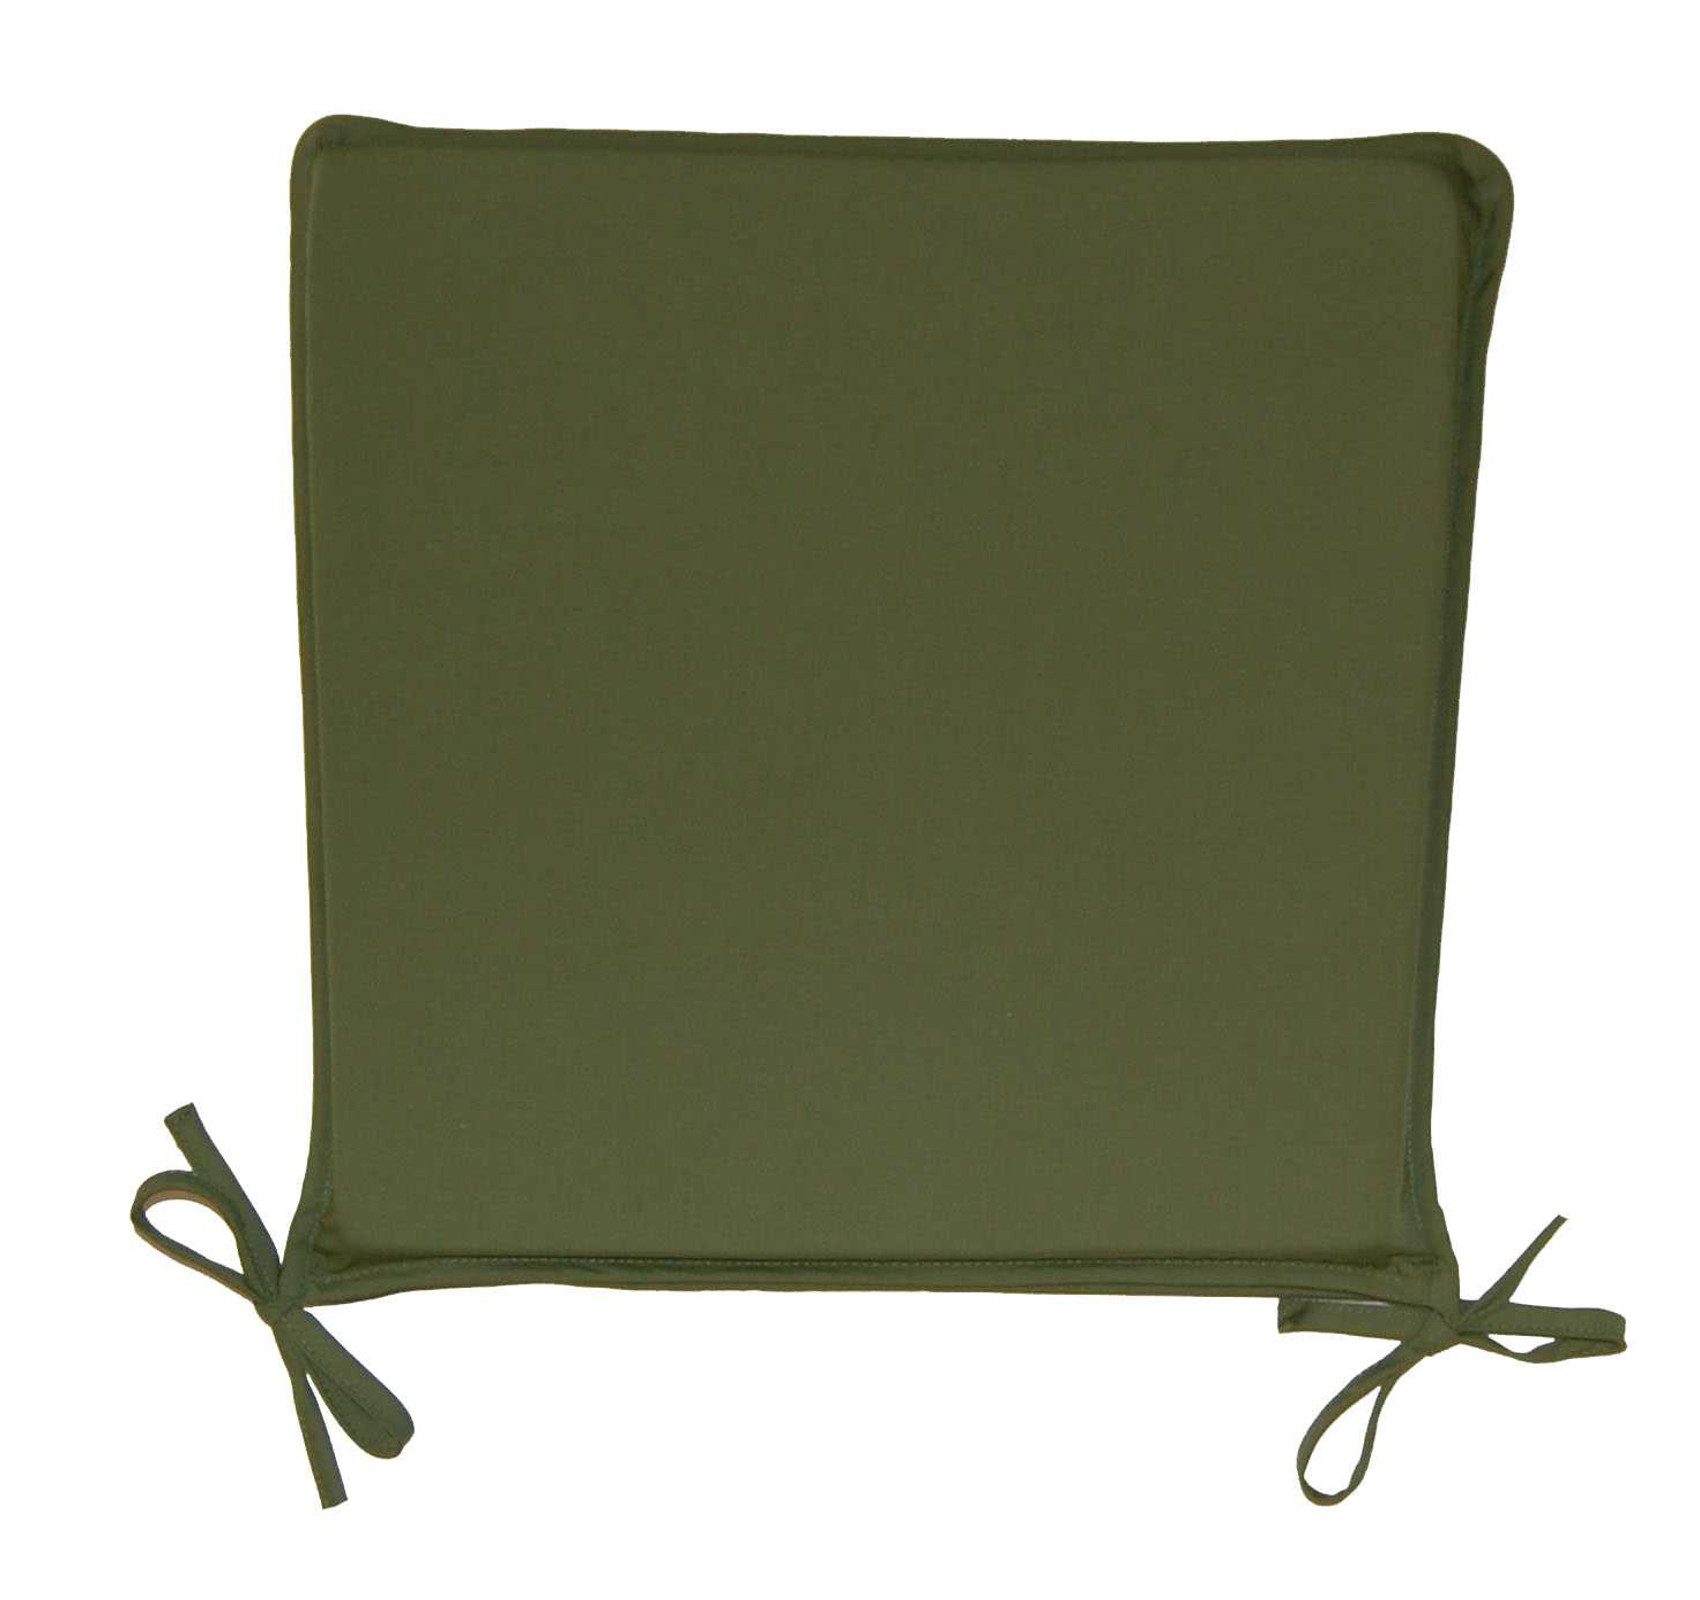 Square Kitchen Seat Pad Garden Furniture Dining Room